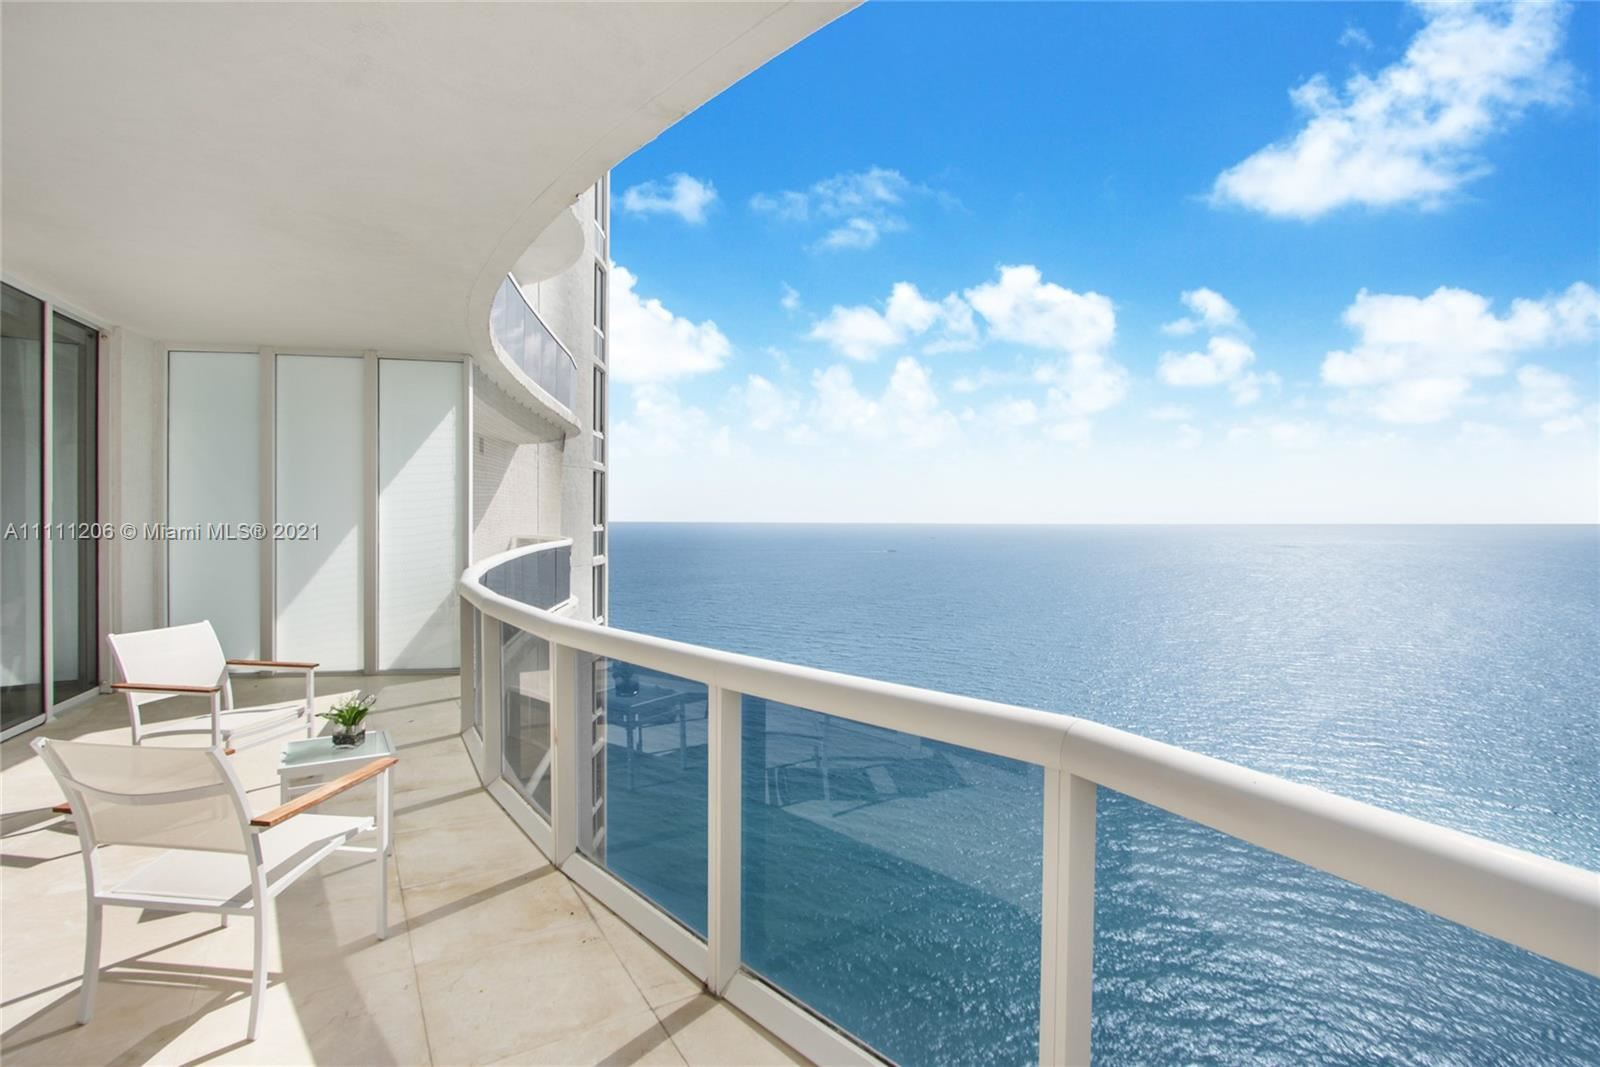 15811 Collins Ave #3007, Sunny Isles, FL 33160 - #: A11111206